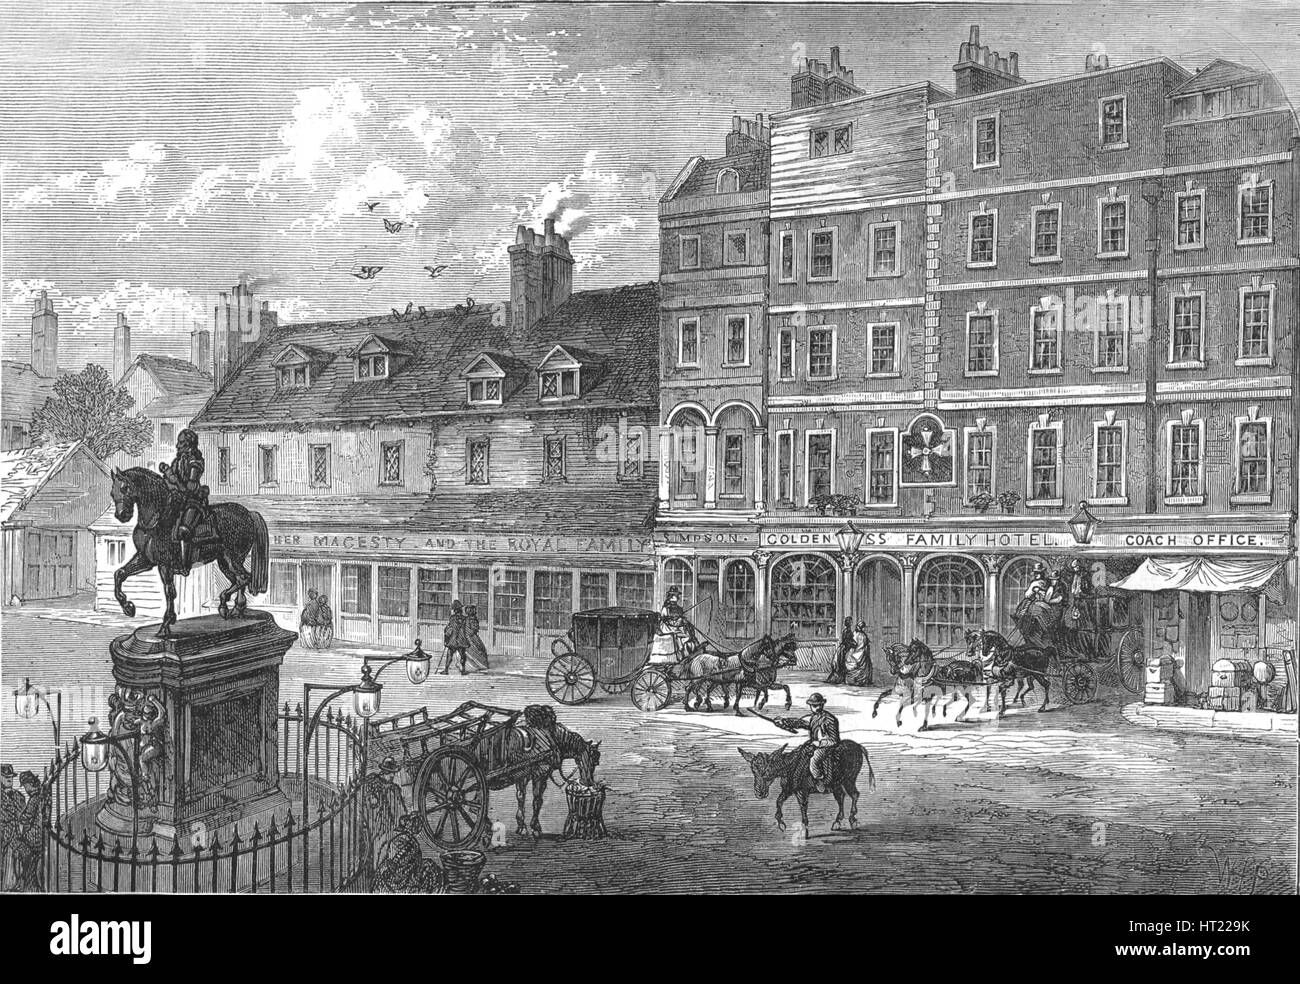 Charing Cross, 1750 (1897). Artists: Cassell & Co, Unknown. - Stock Image